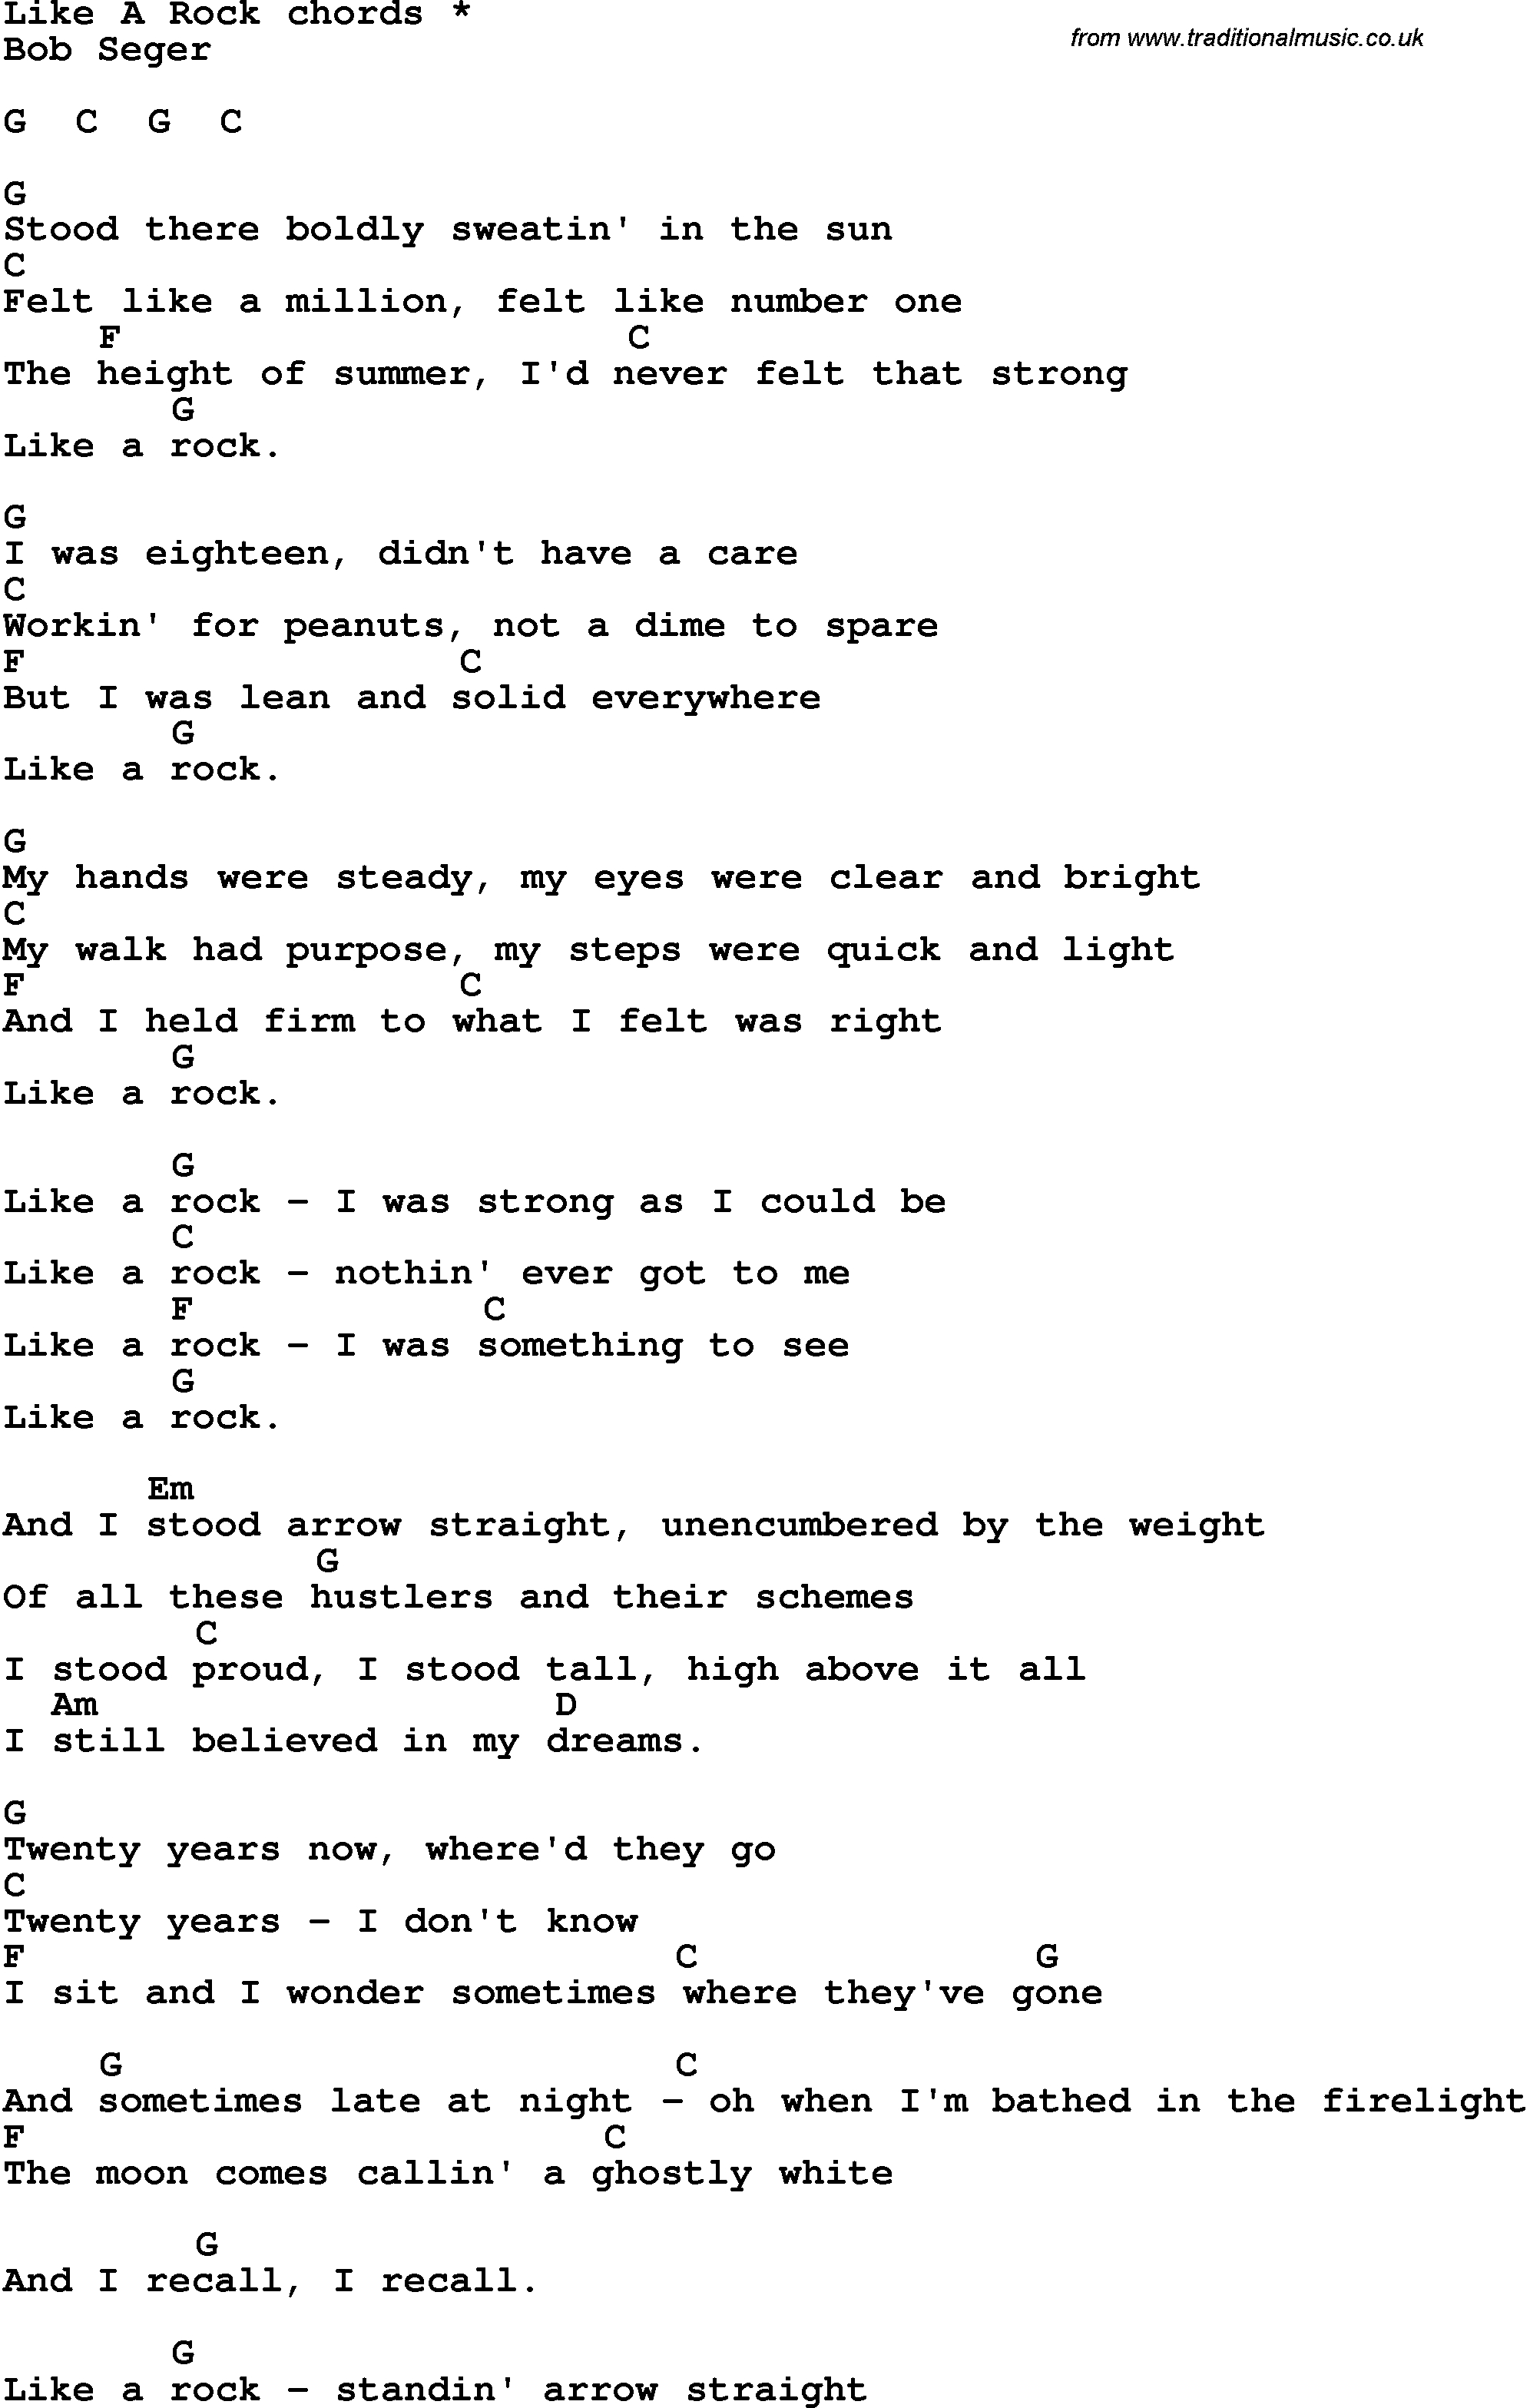 The Weight Chords Song Lyrics With Guitar Chords For Like A Rock